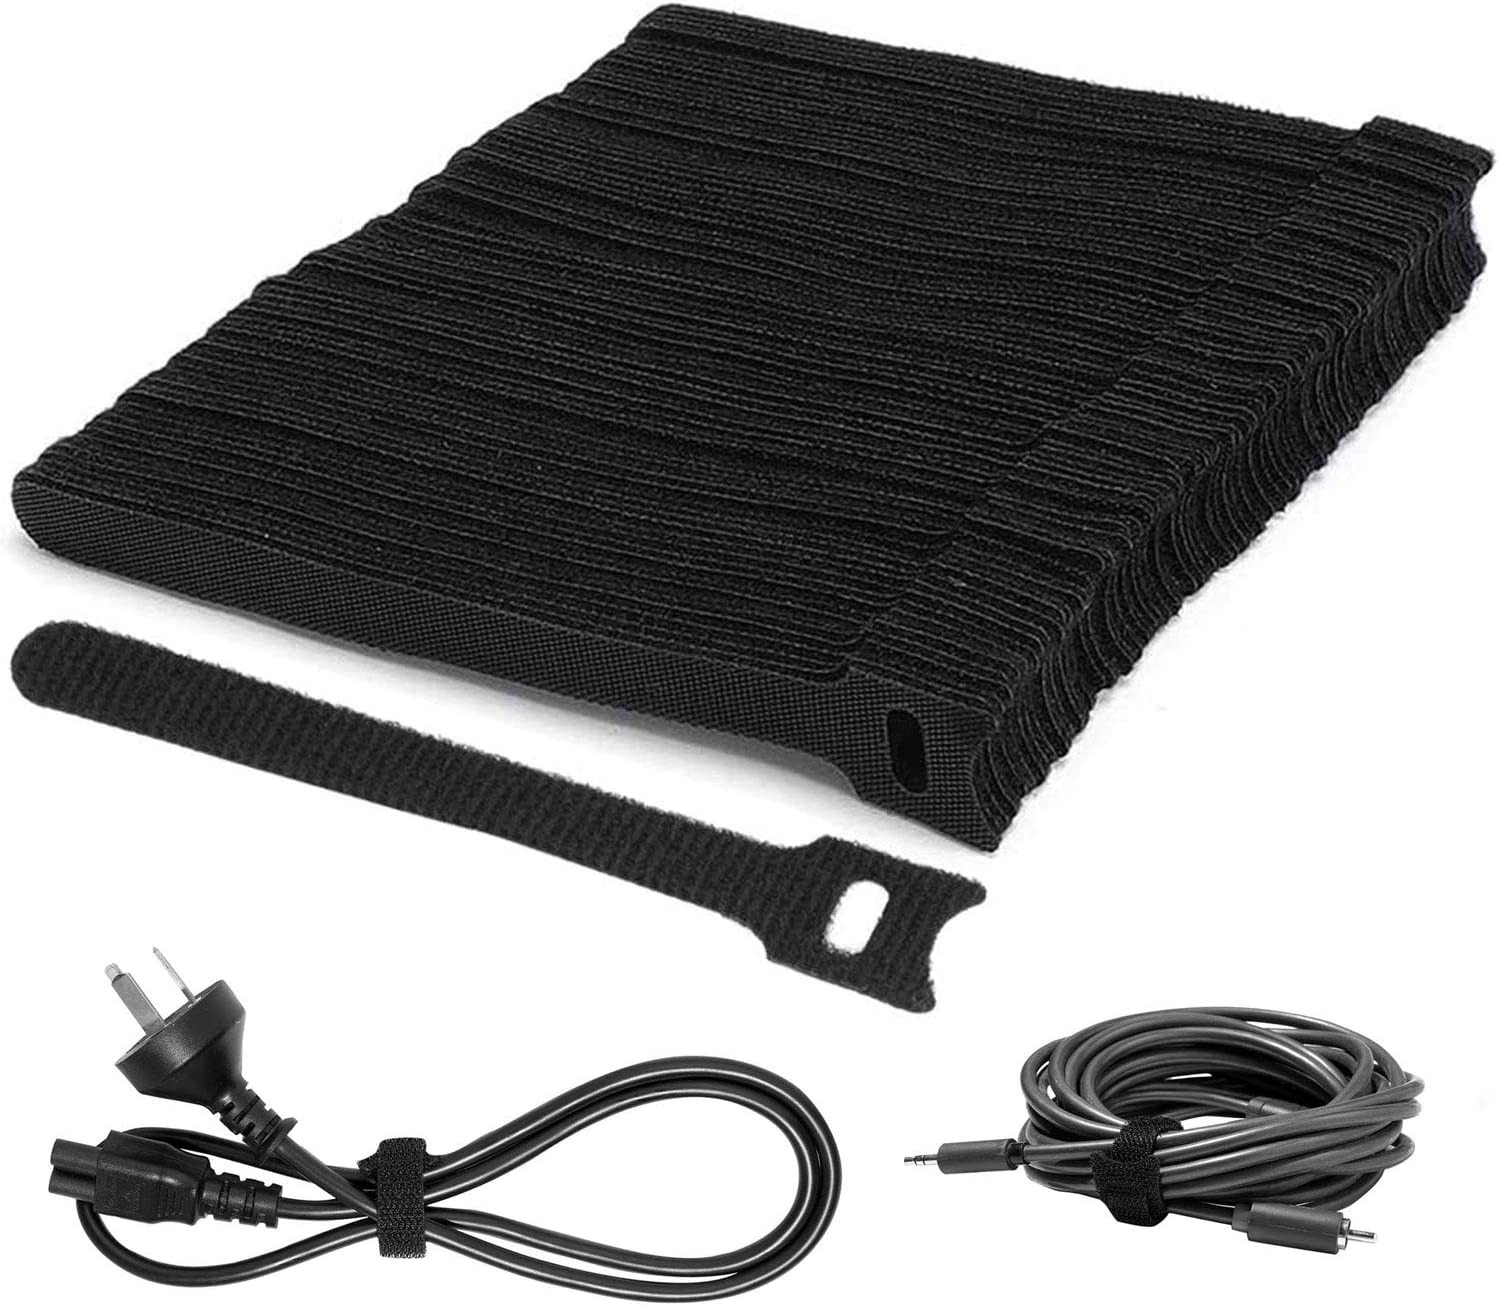 100pcs Cable Straps Black Hook and Loop Cable Ties Adjustable Reusable Tidy Wrap for PC Computer Electronics Fastening Tape Hossom Reusable Cable Ties